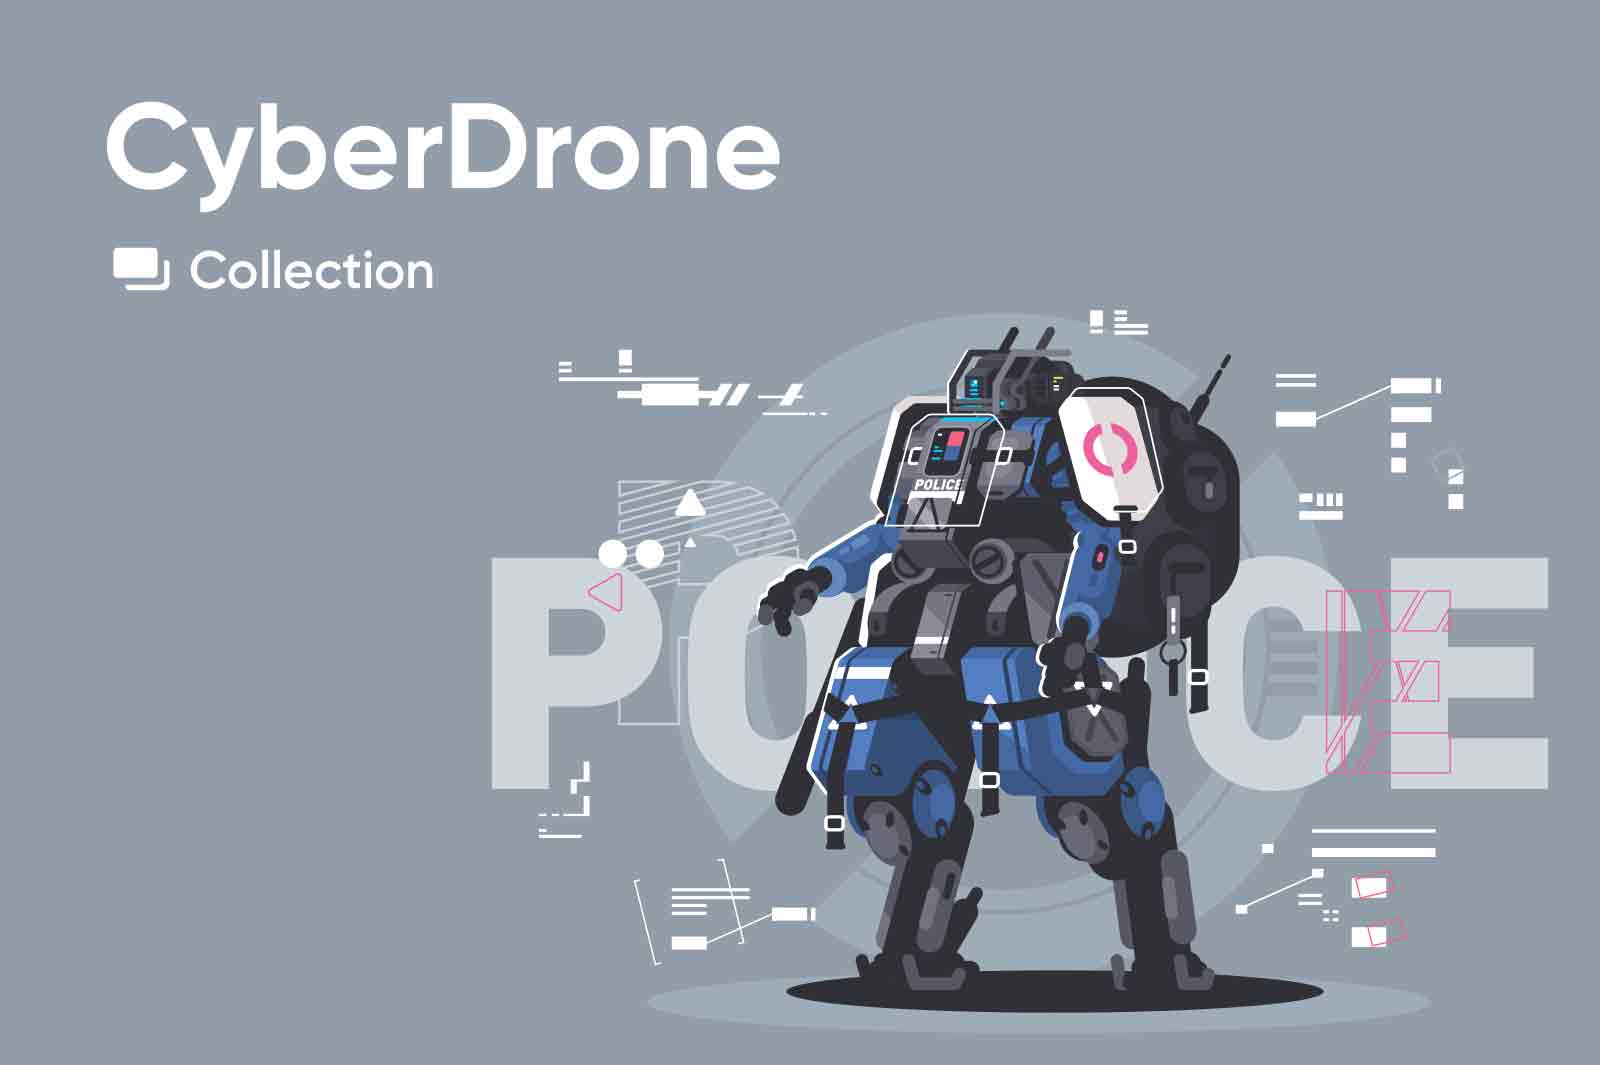 Vector illustrations of hi tech cyber technologies of the near future, advanced drones and robots characters.